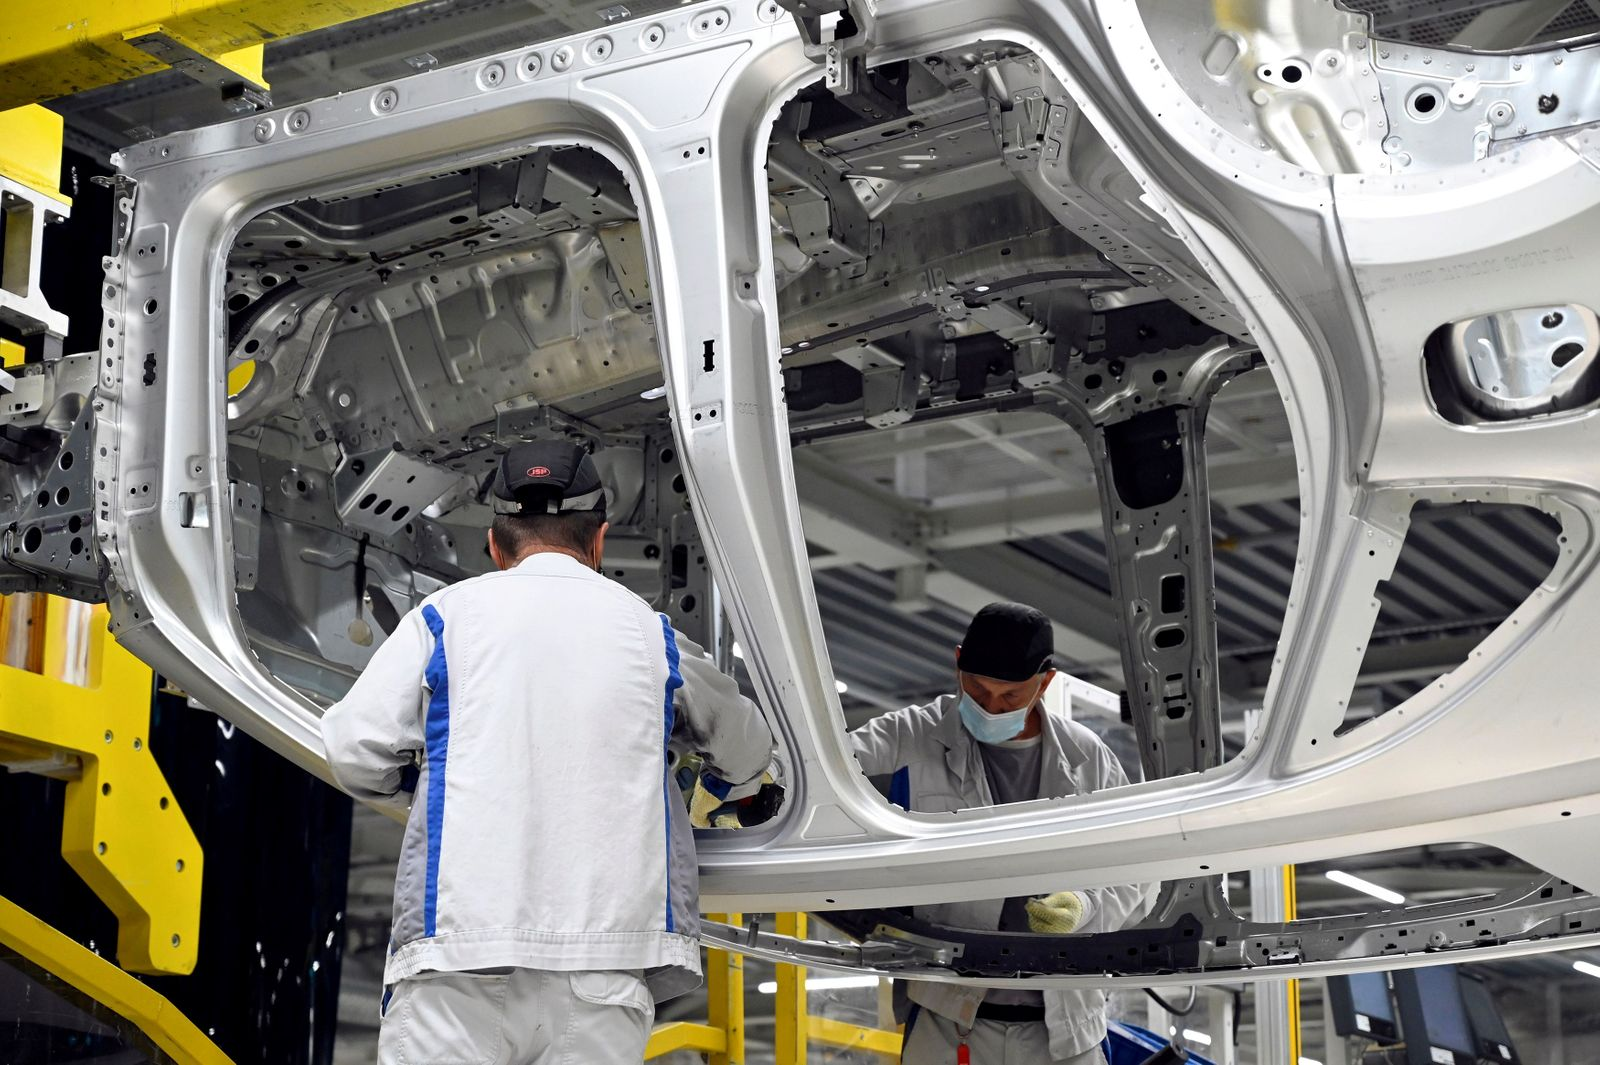 FILE PHOTO: Employees work on an assembly line as the Volkswagen construction plant reopens after closing down due to the coronavirus disease (COVID-19) outbreak in Bratislava